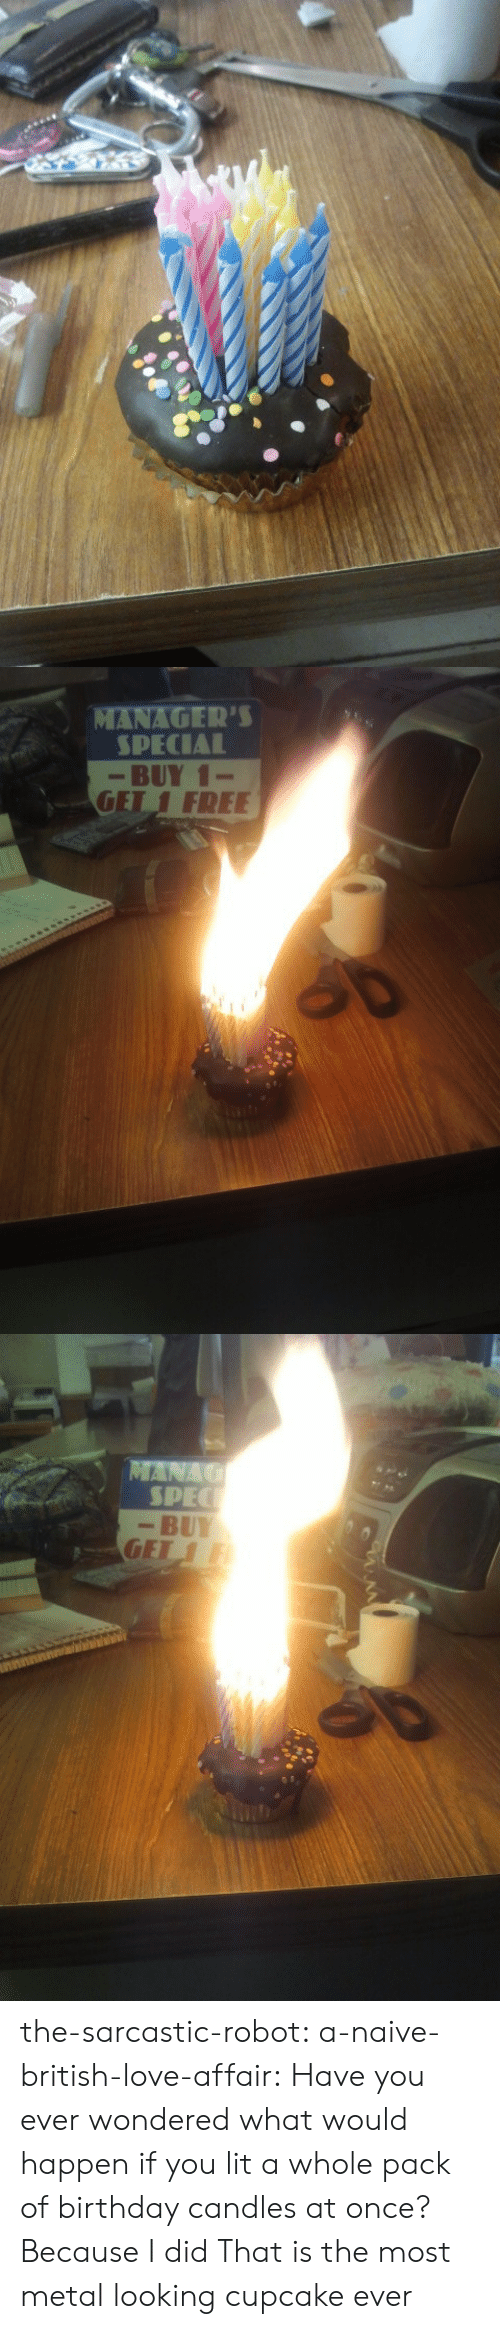 Would Happen: ·  ATNAGER'S  SPECIAL  -BUY 1-  GET 1 FREE   -BUY the-sarcastic-robot:  a-naive-british-love-affair:  Have you ever wondered what would happen if you lit a whole pack of birthday candles at once? Because I did  That is the most metal looking cupcake ever